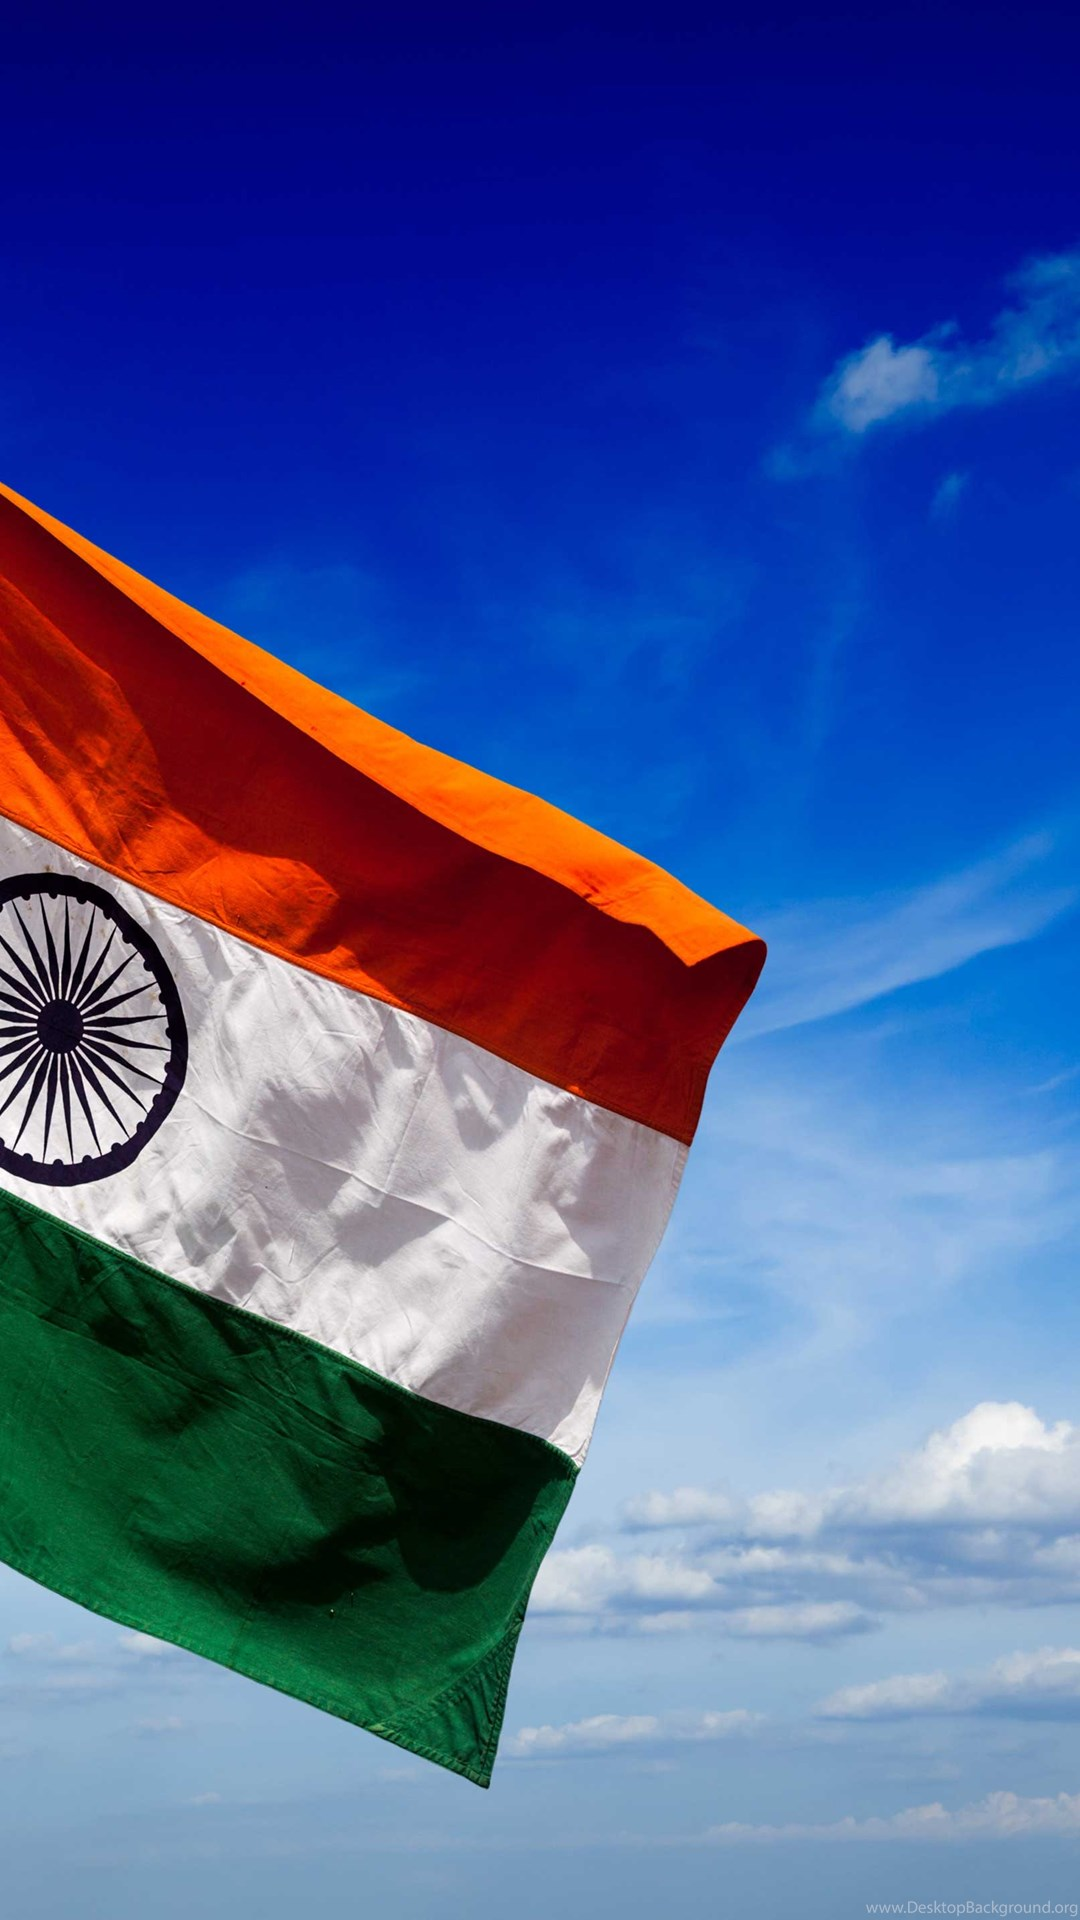 Indian Flag Photos Hd Wallpapers Download Free 15 Aug 2015jpg